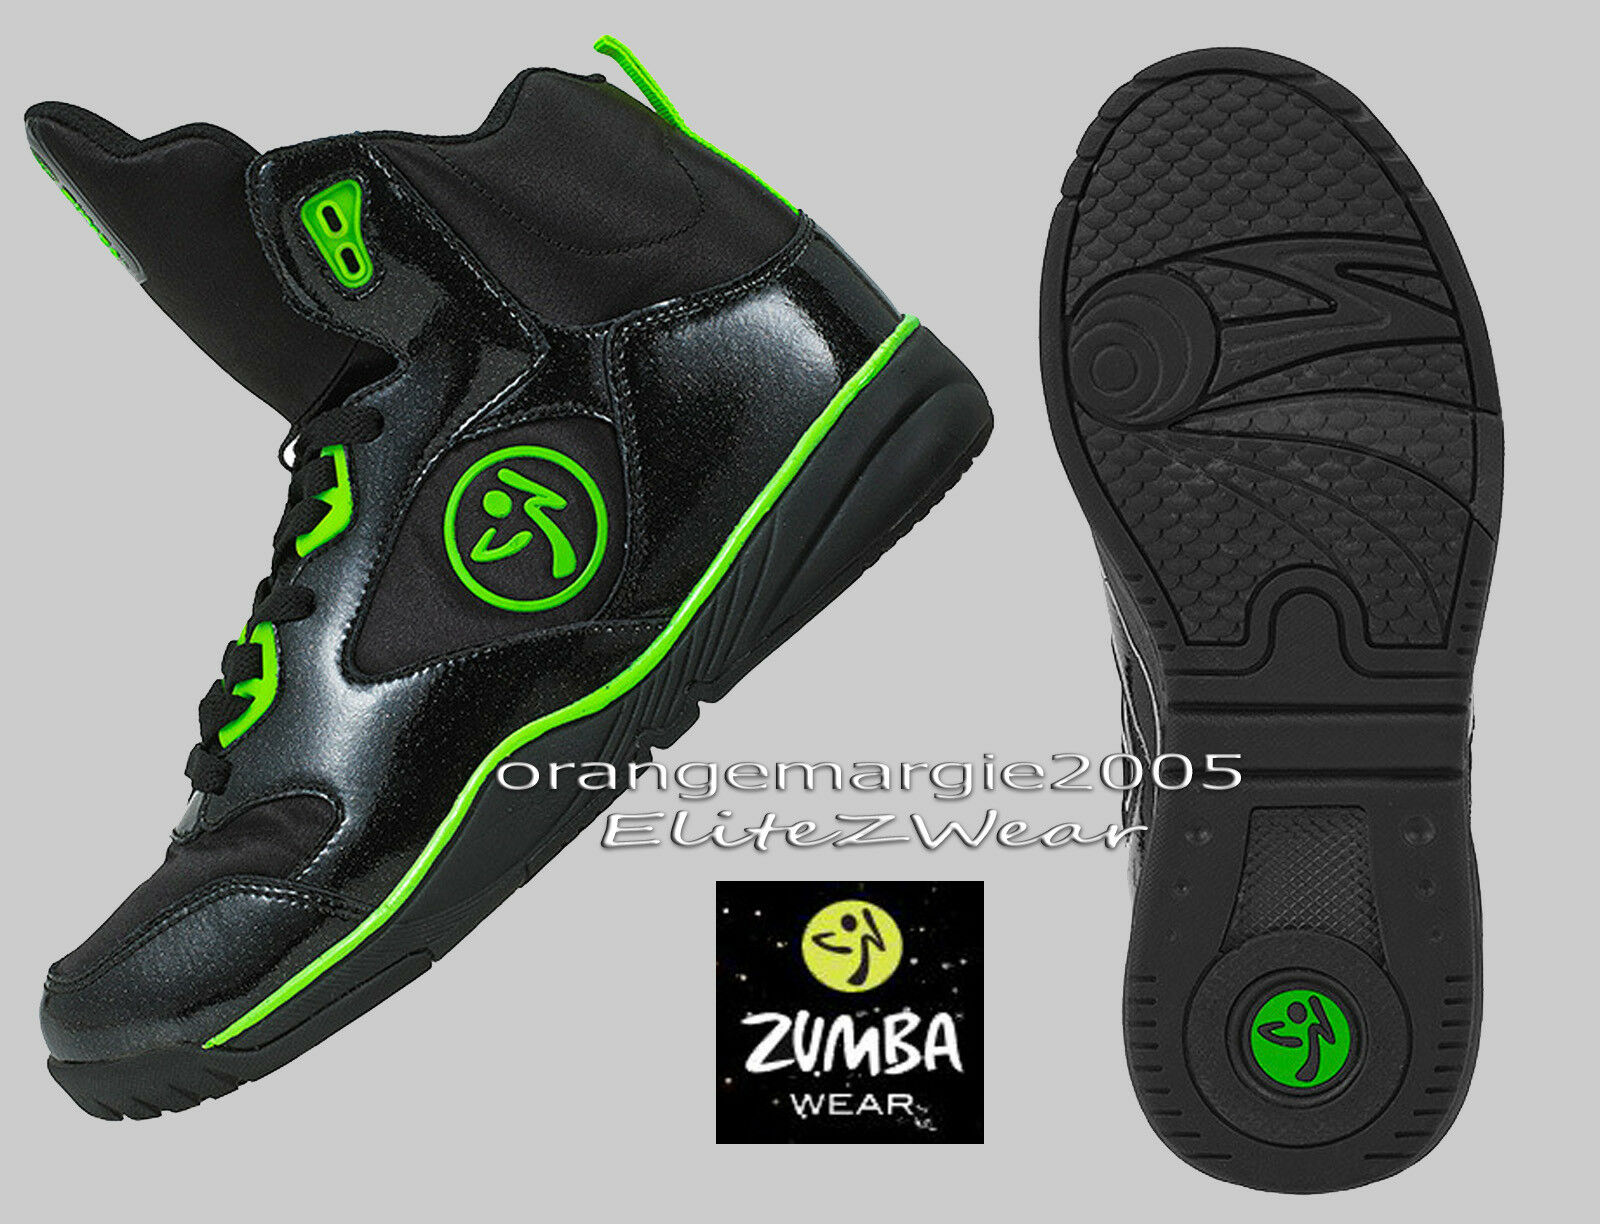 ZUMBA HIGH TOP SHOES TRAINERS Classic Max  Zumba's Top Line  6,6.5,7,7.5,8,8.5,9